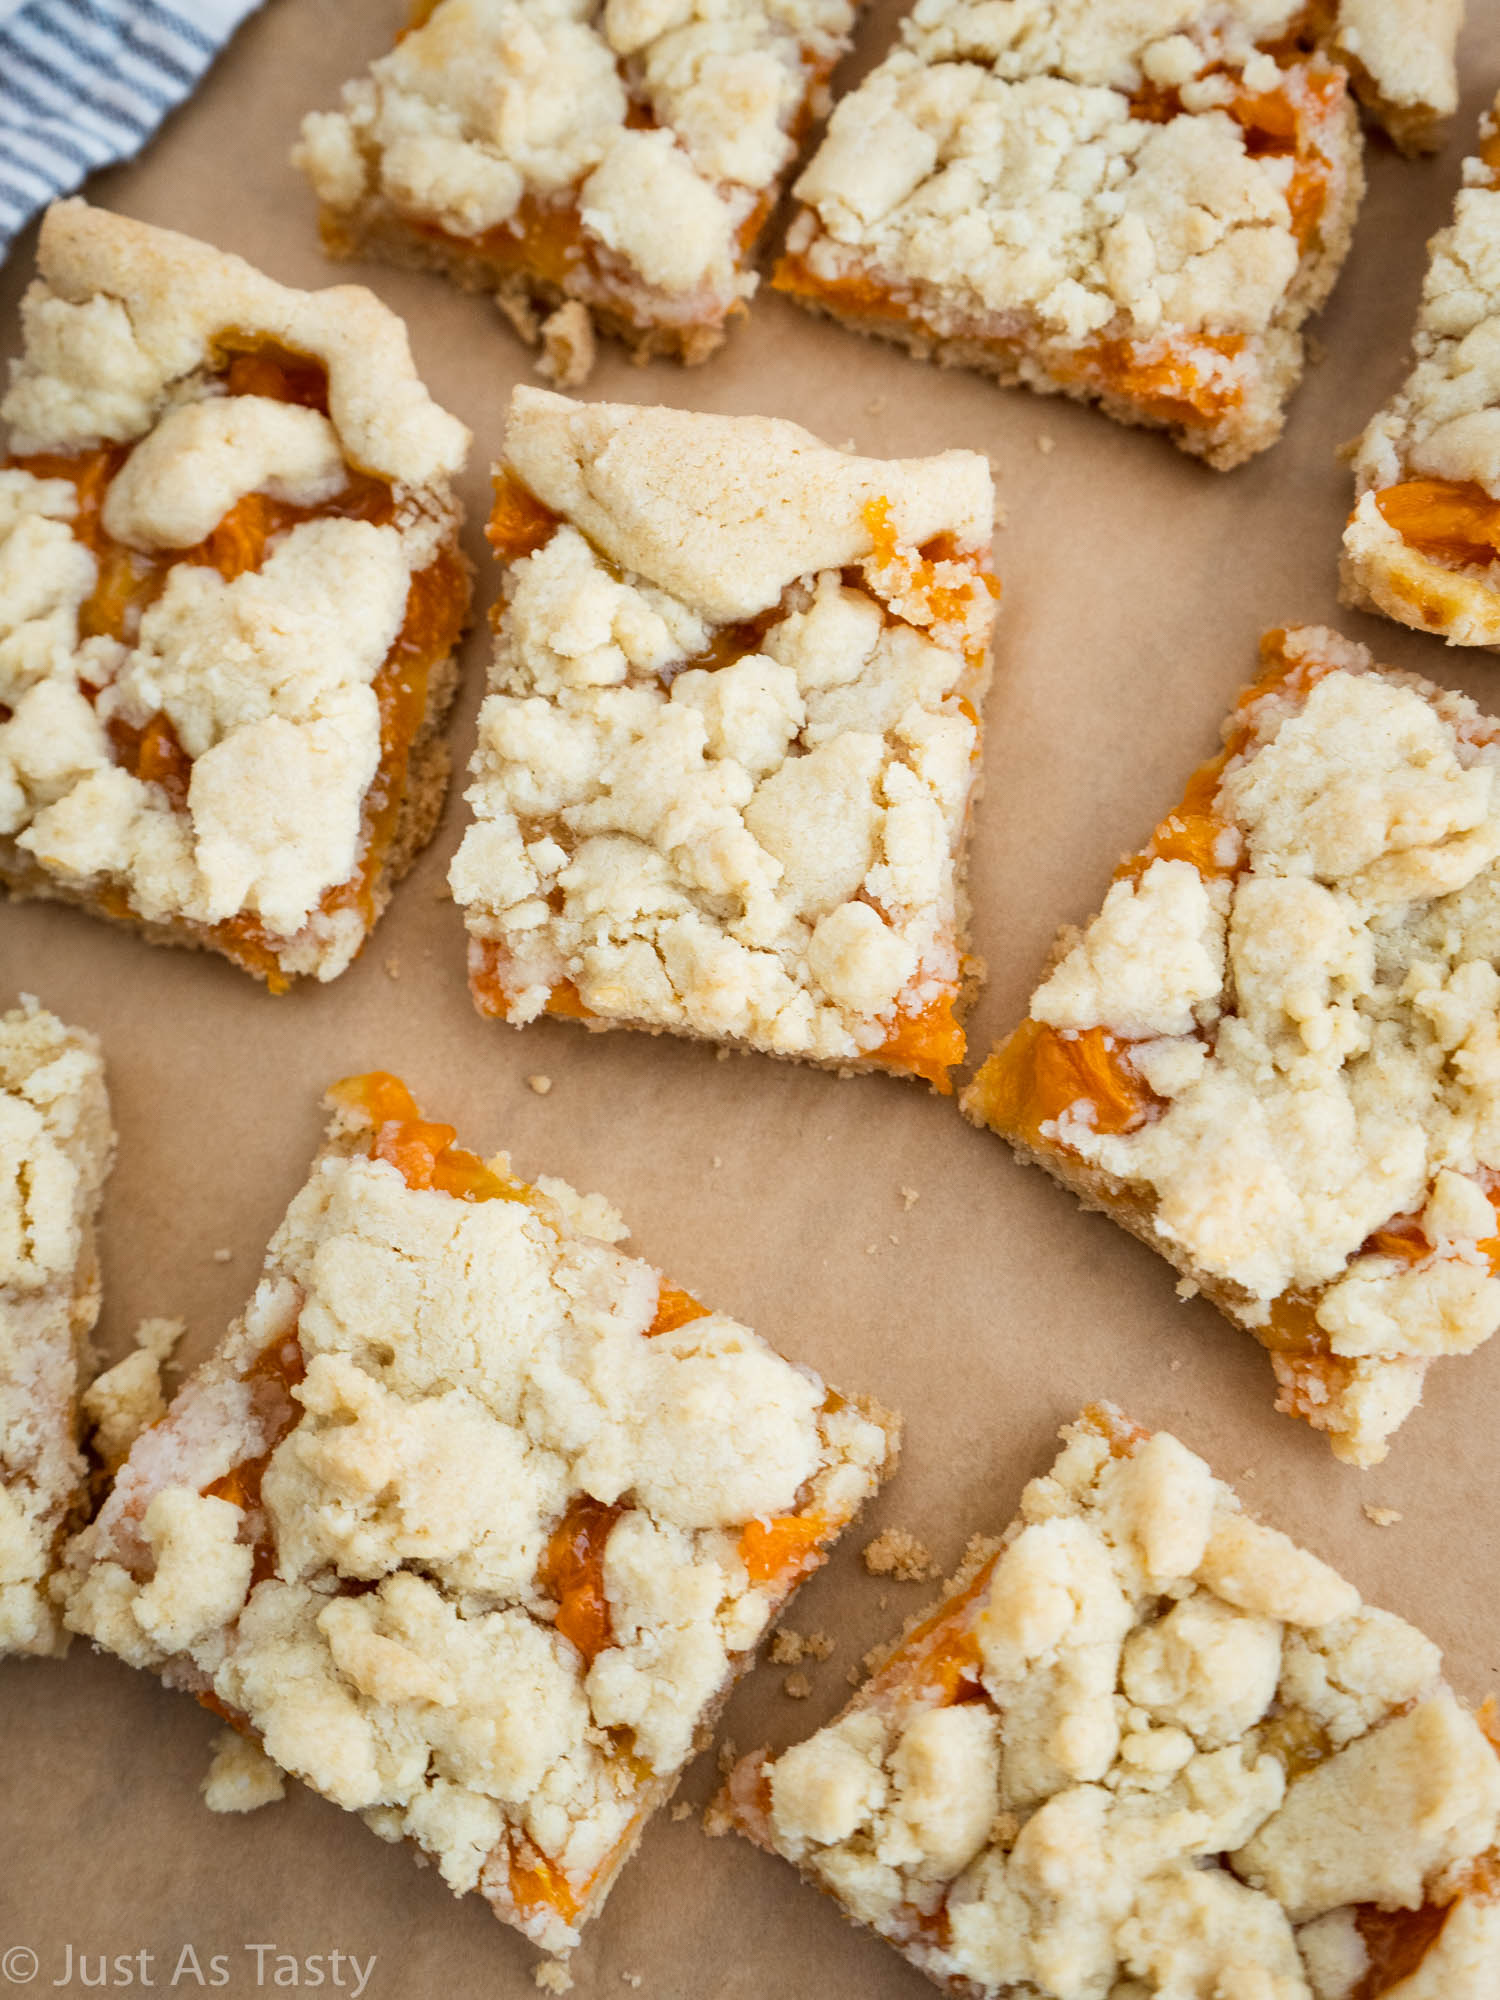 Apricot crumble bars on brown parchment paper.